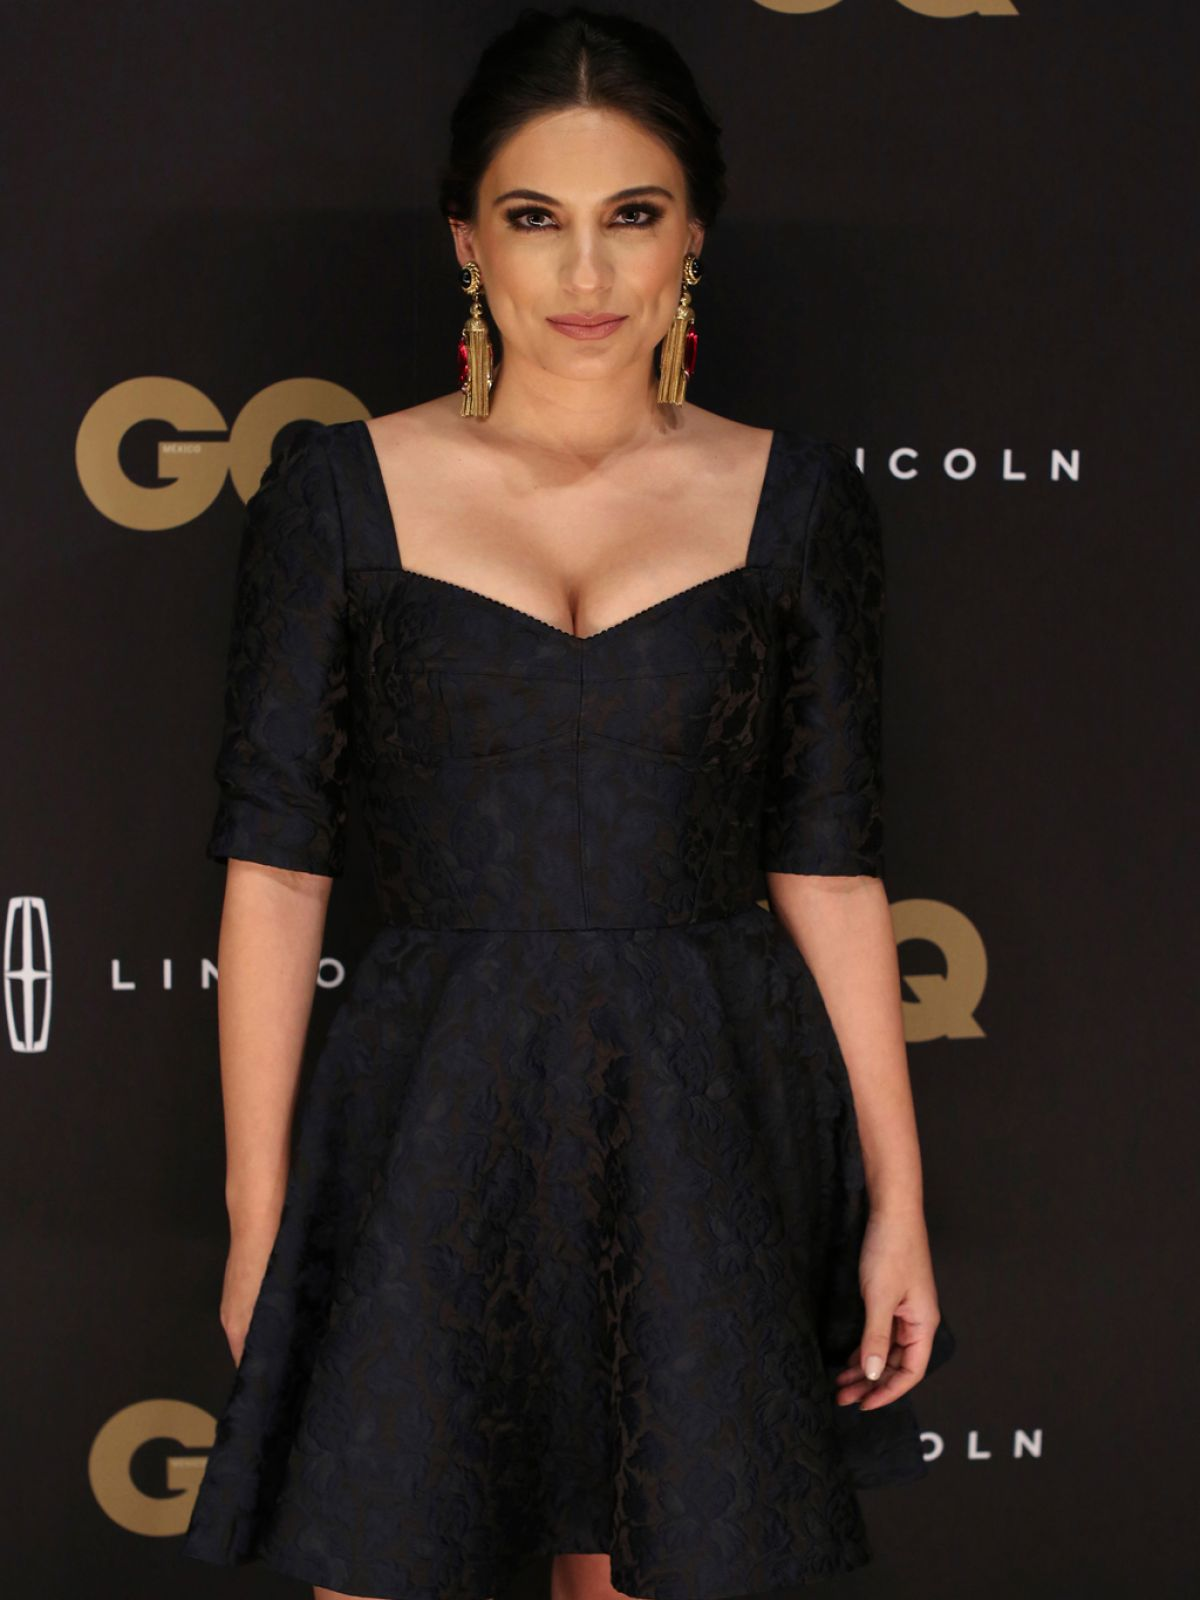 ANA BRENDA CONTRERAS at GQ Men of the Year Mexico Awards 11/04/2015